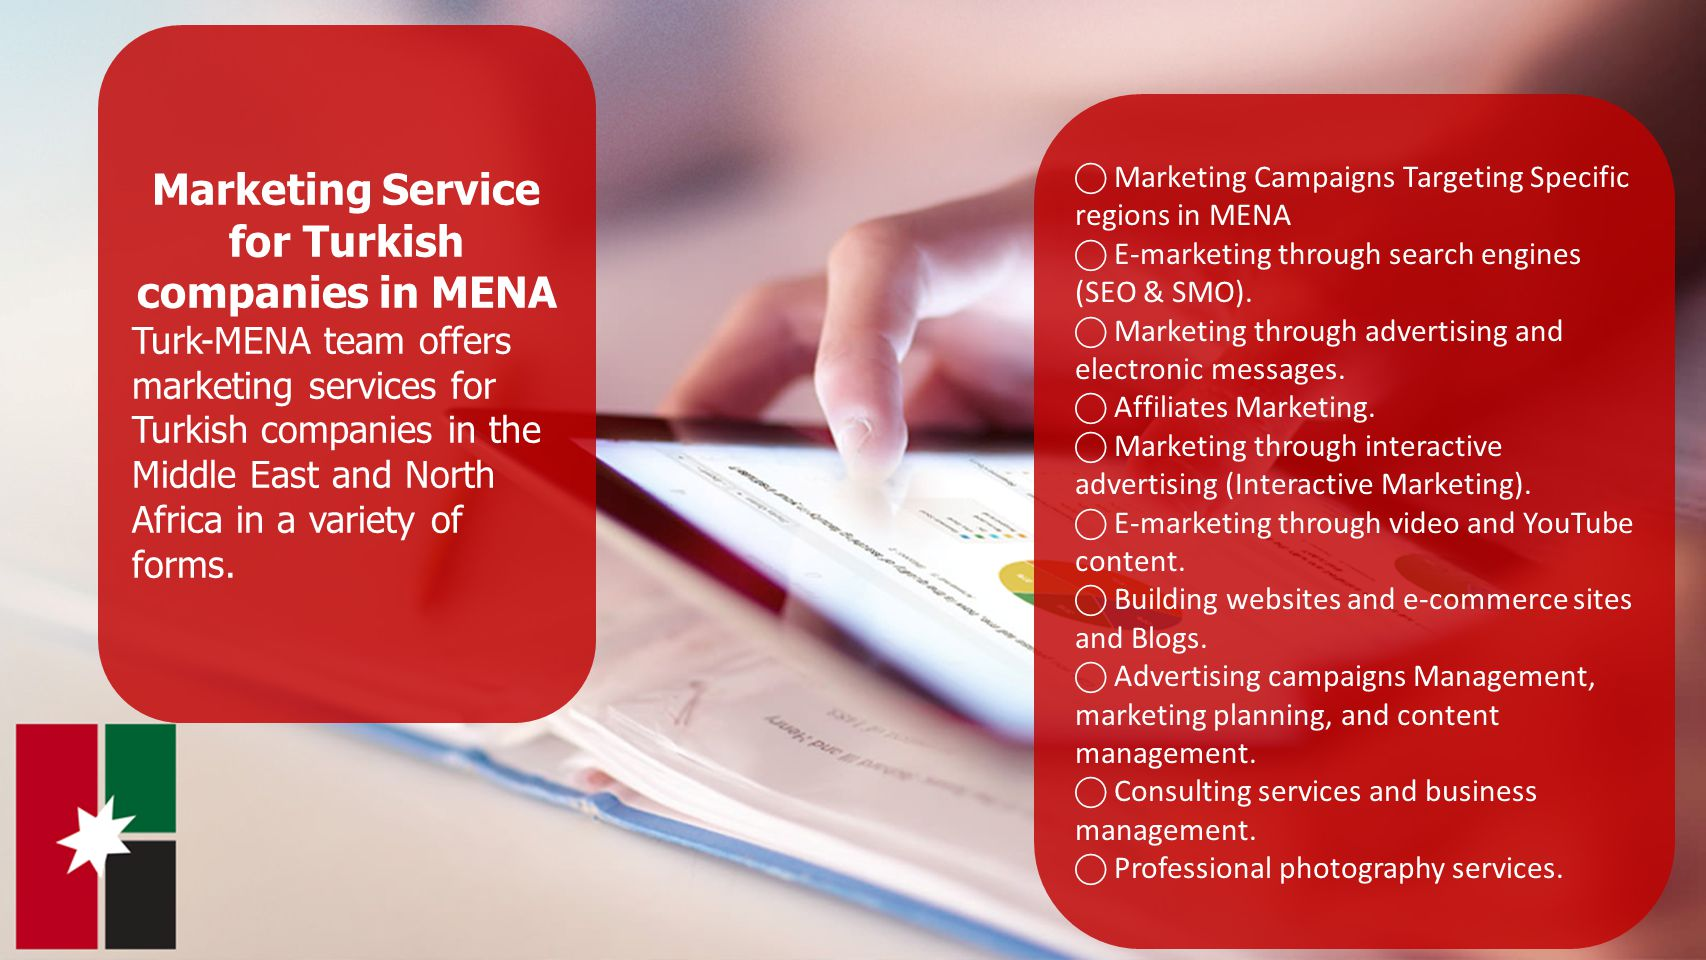 6 Marketing Service for Turkish companies in MENA Turk-MENA team offers marketing services for Turkish companies in the Middle East and North Africa in a variety of forms.